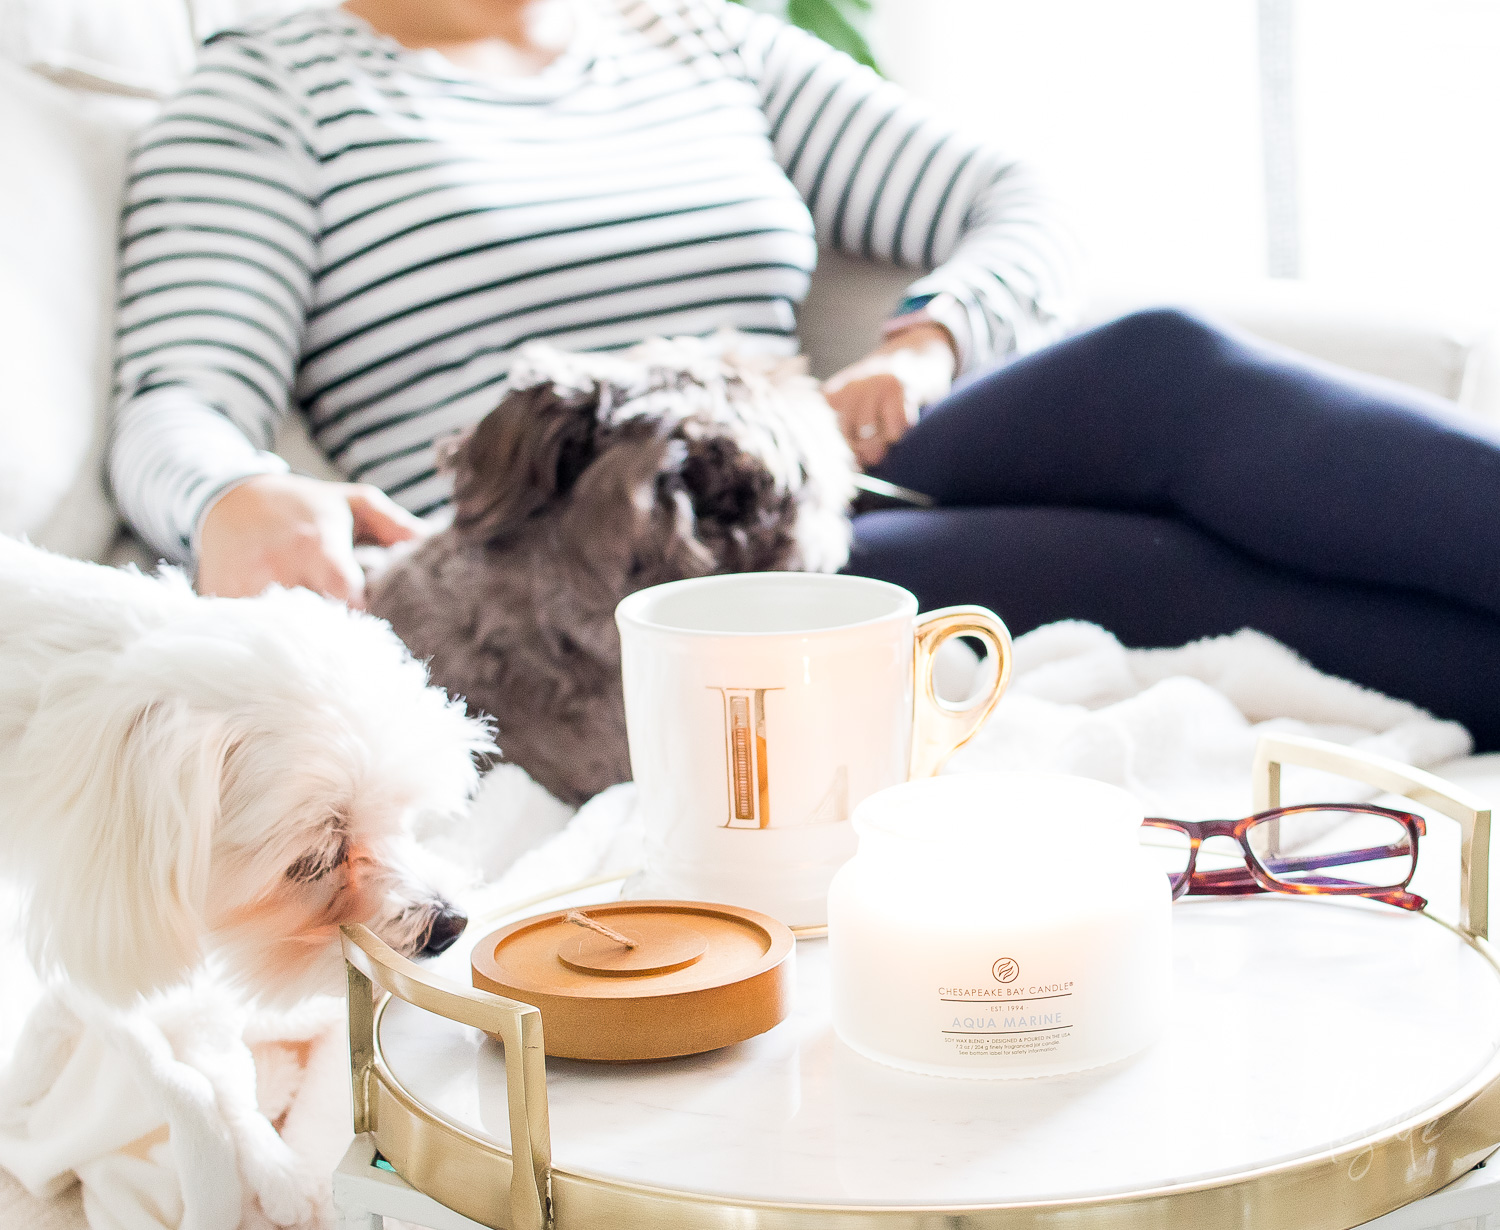 Chesapeake Bay Candle | The Heritage Collection | Practicying hygge with candles